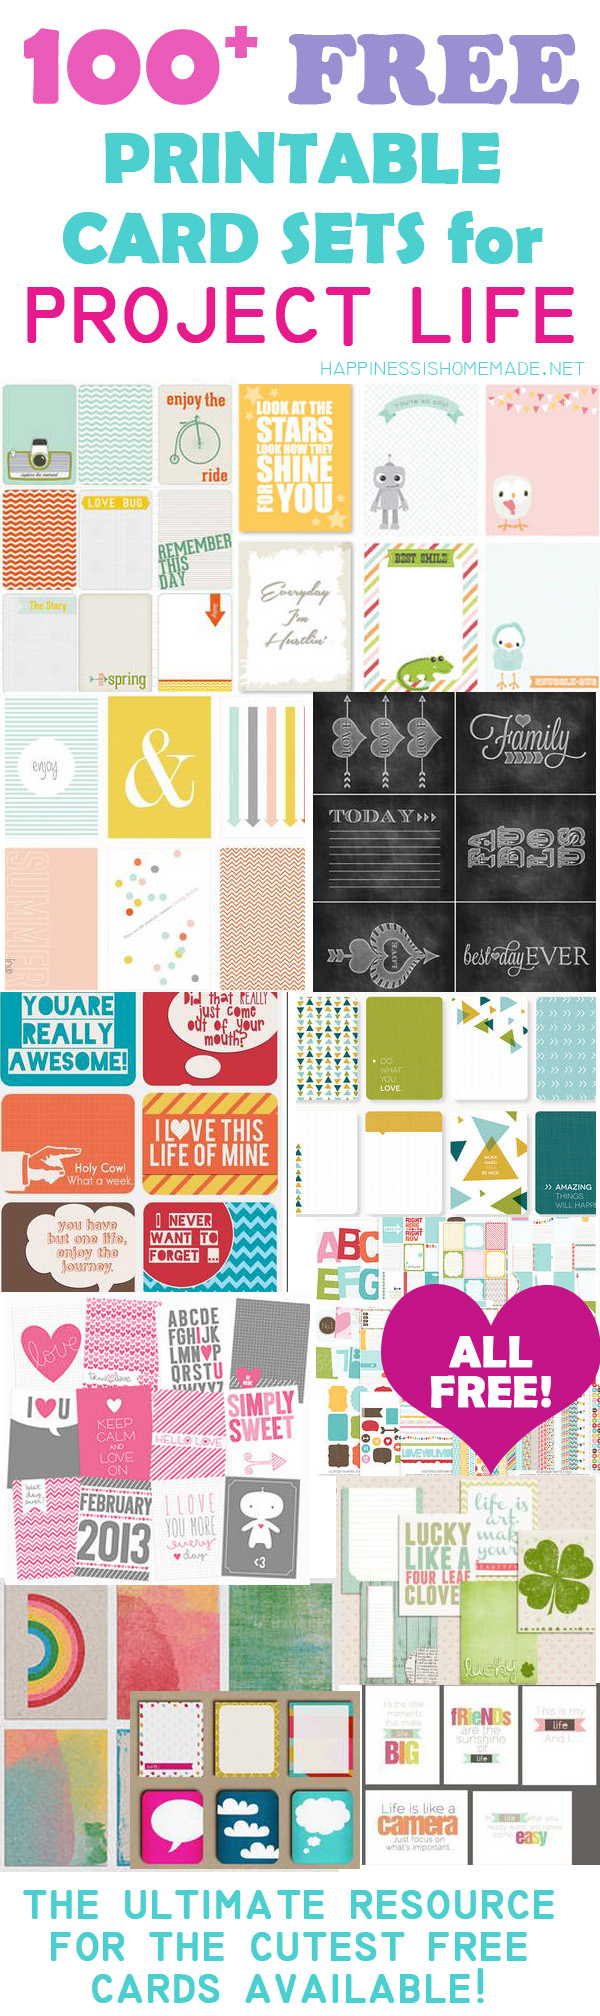 4 Images of Project Life Free Printables